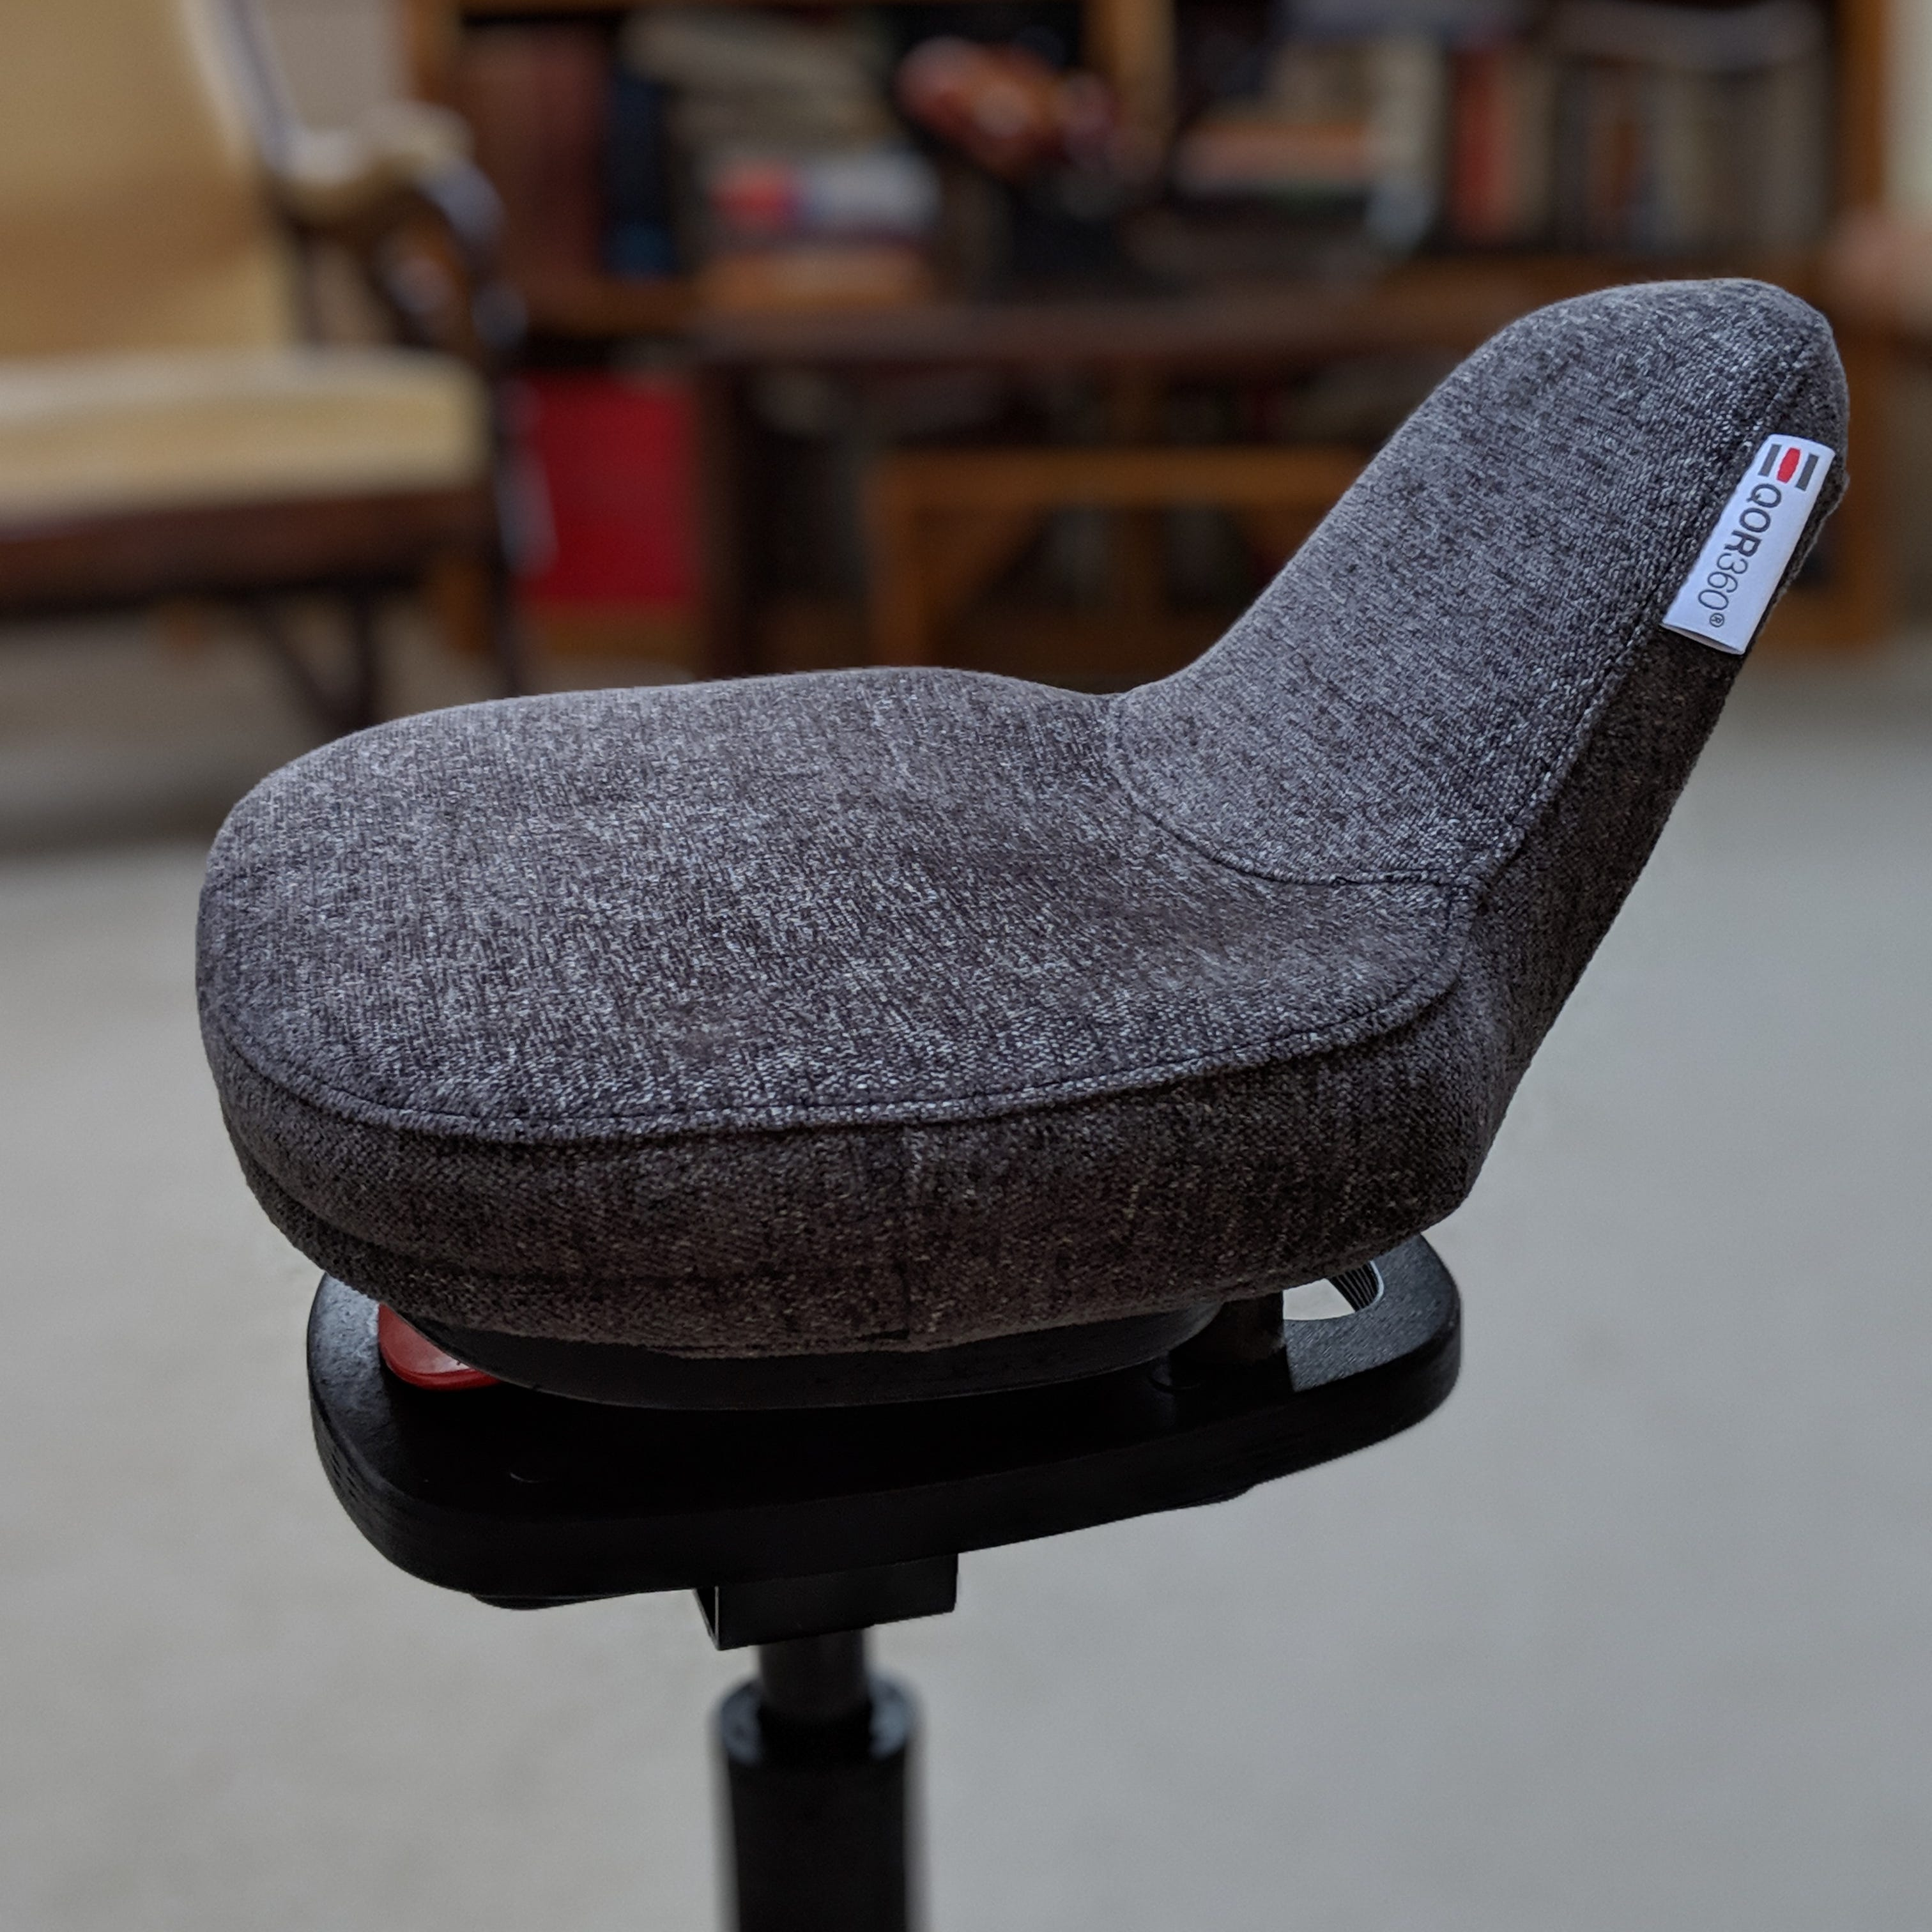 Burlington startup takes on 'sitting disease' with patented new chair